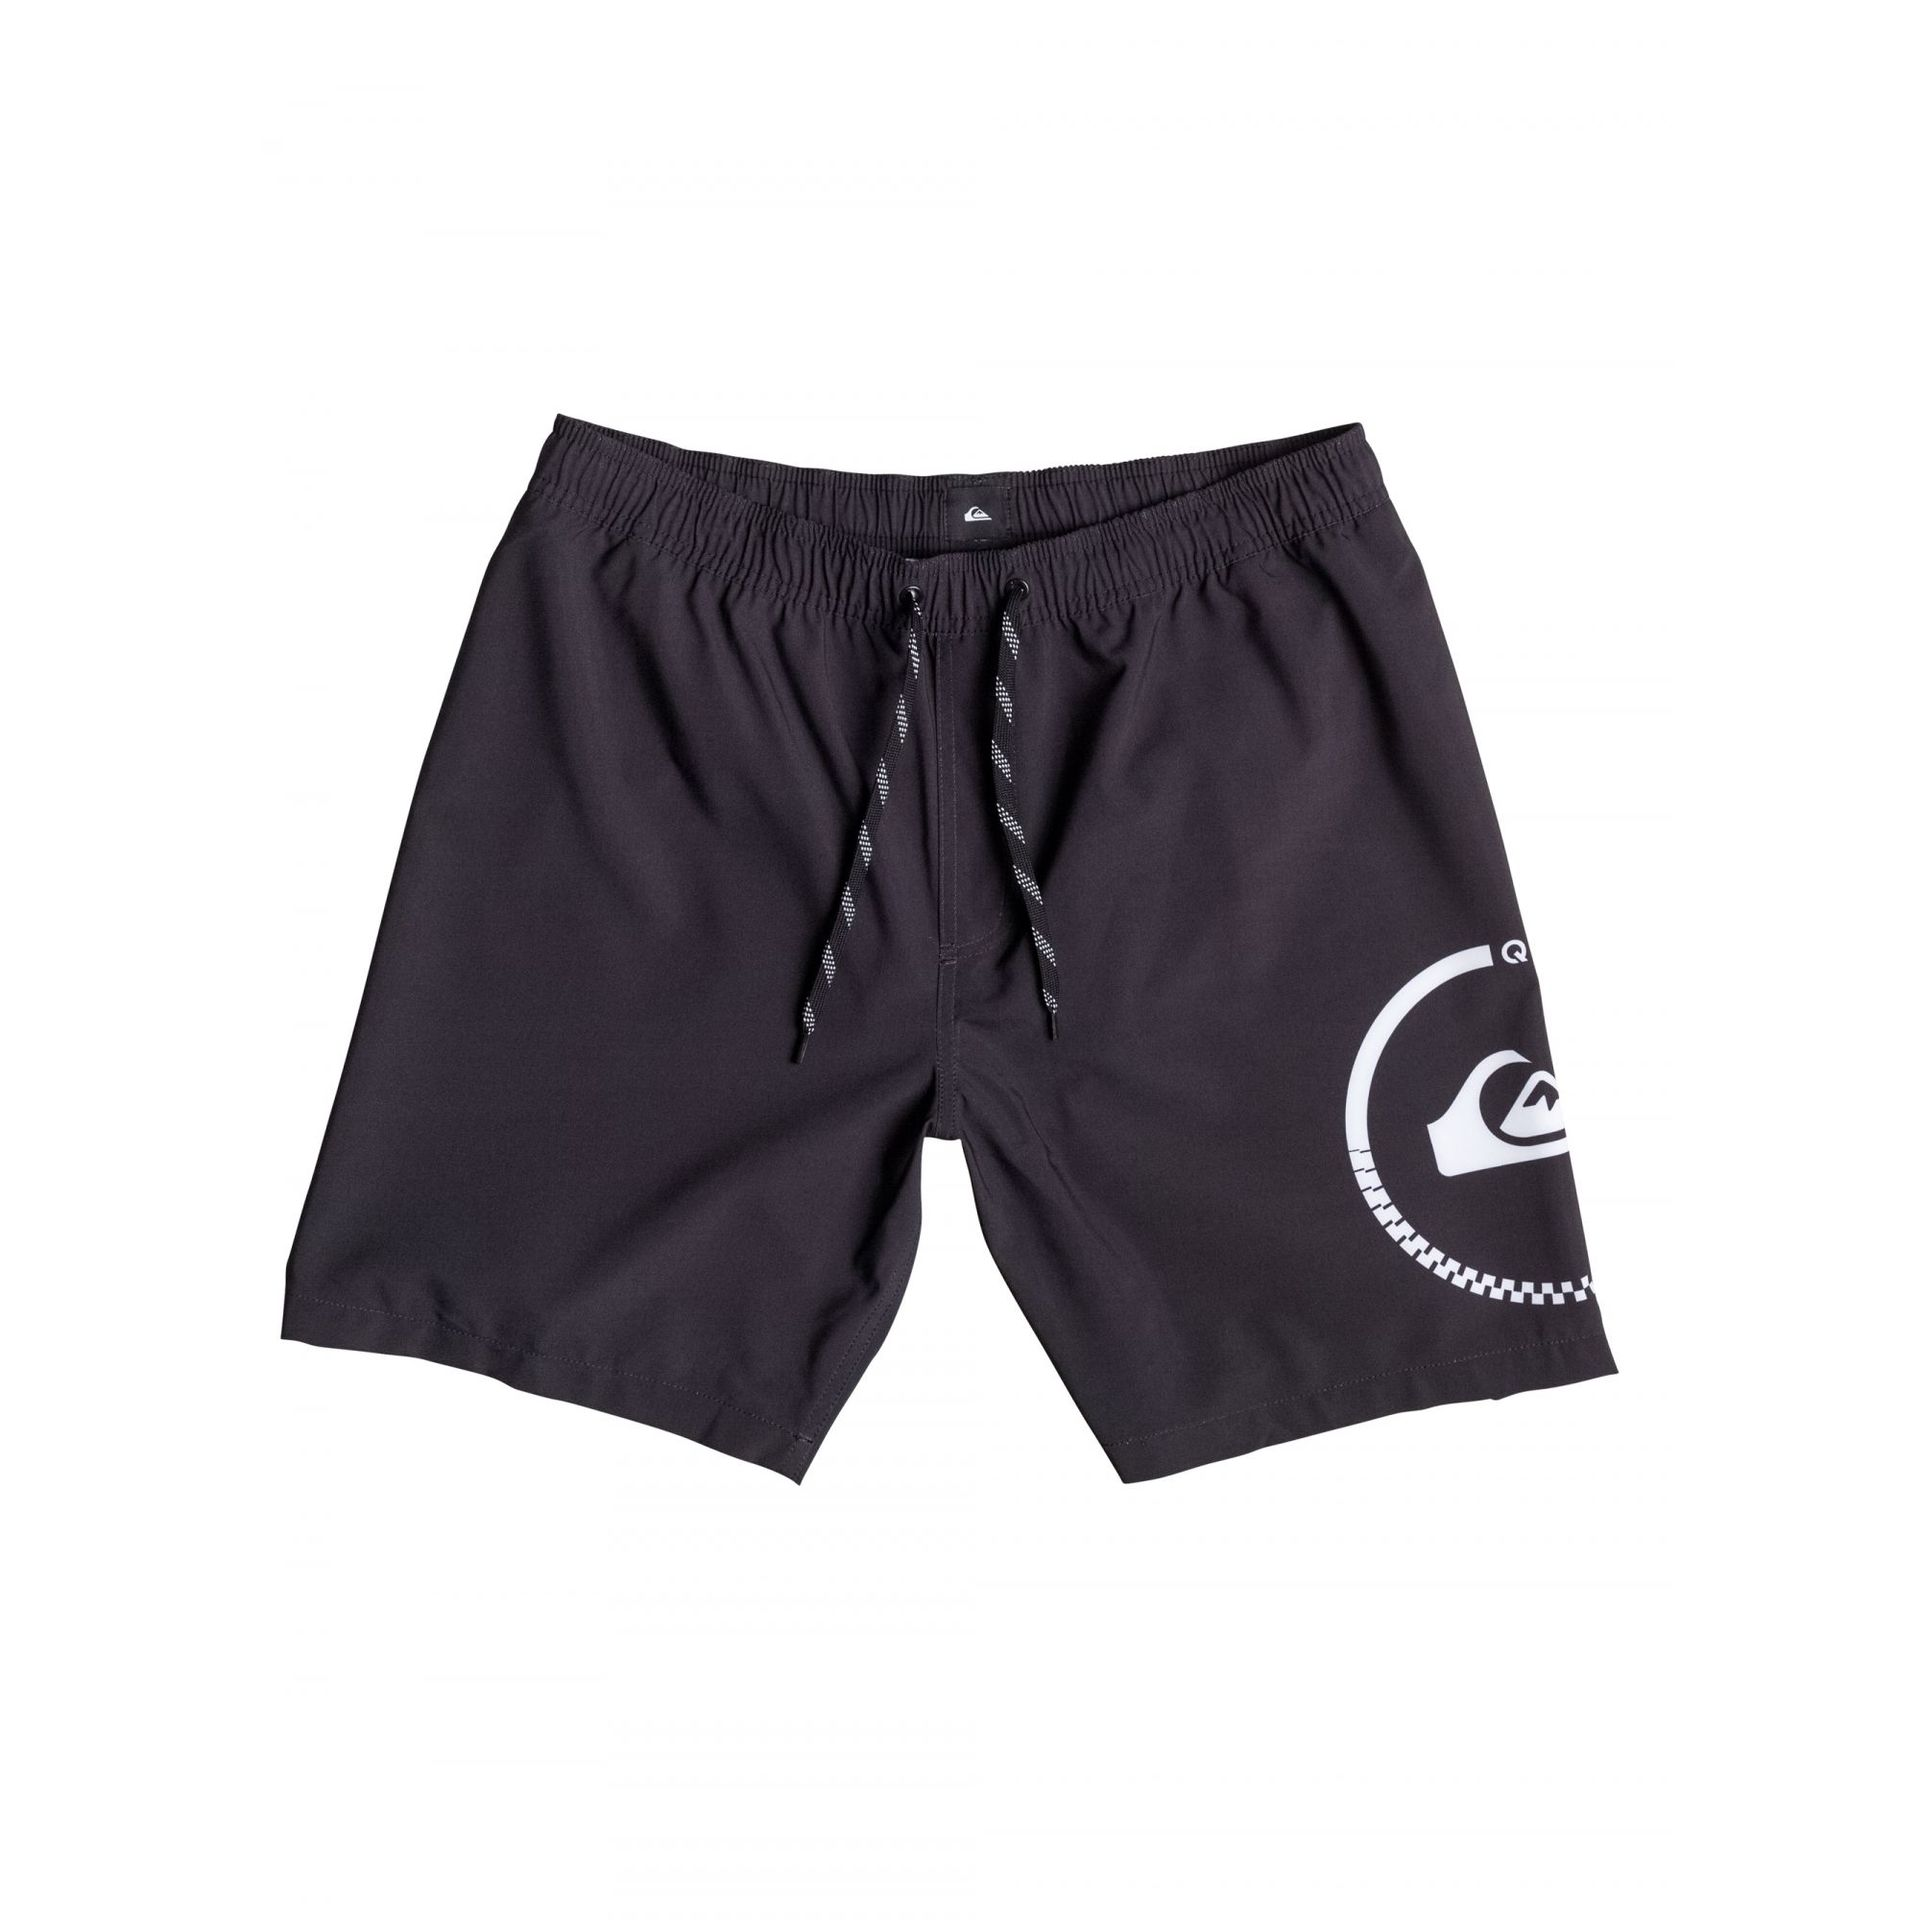 BOARDSHORTY QUIKSILVER SIDEWAYS VOLLEY 17 KVJ6